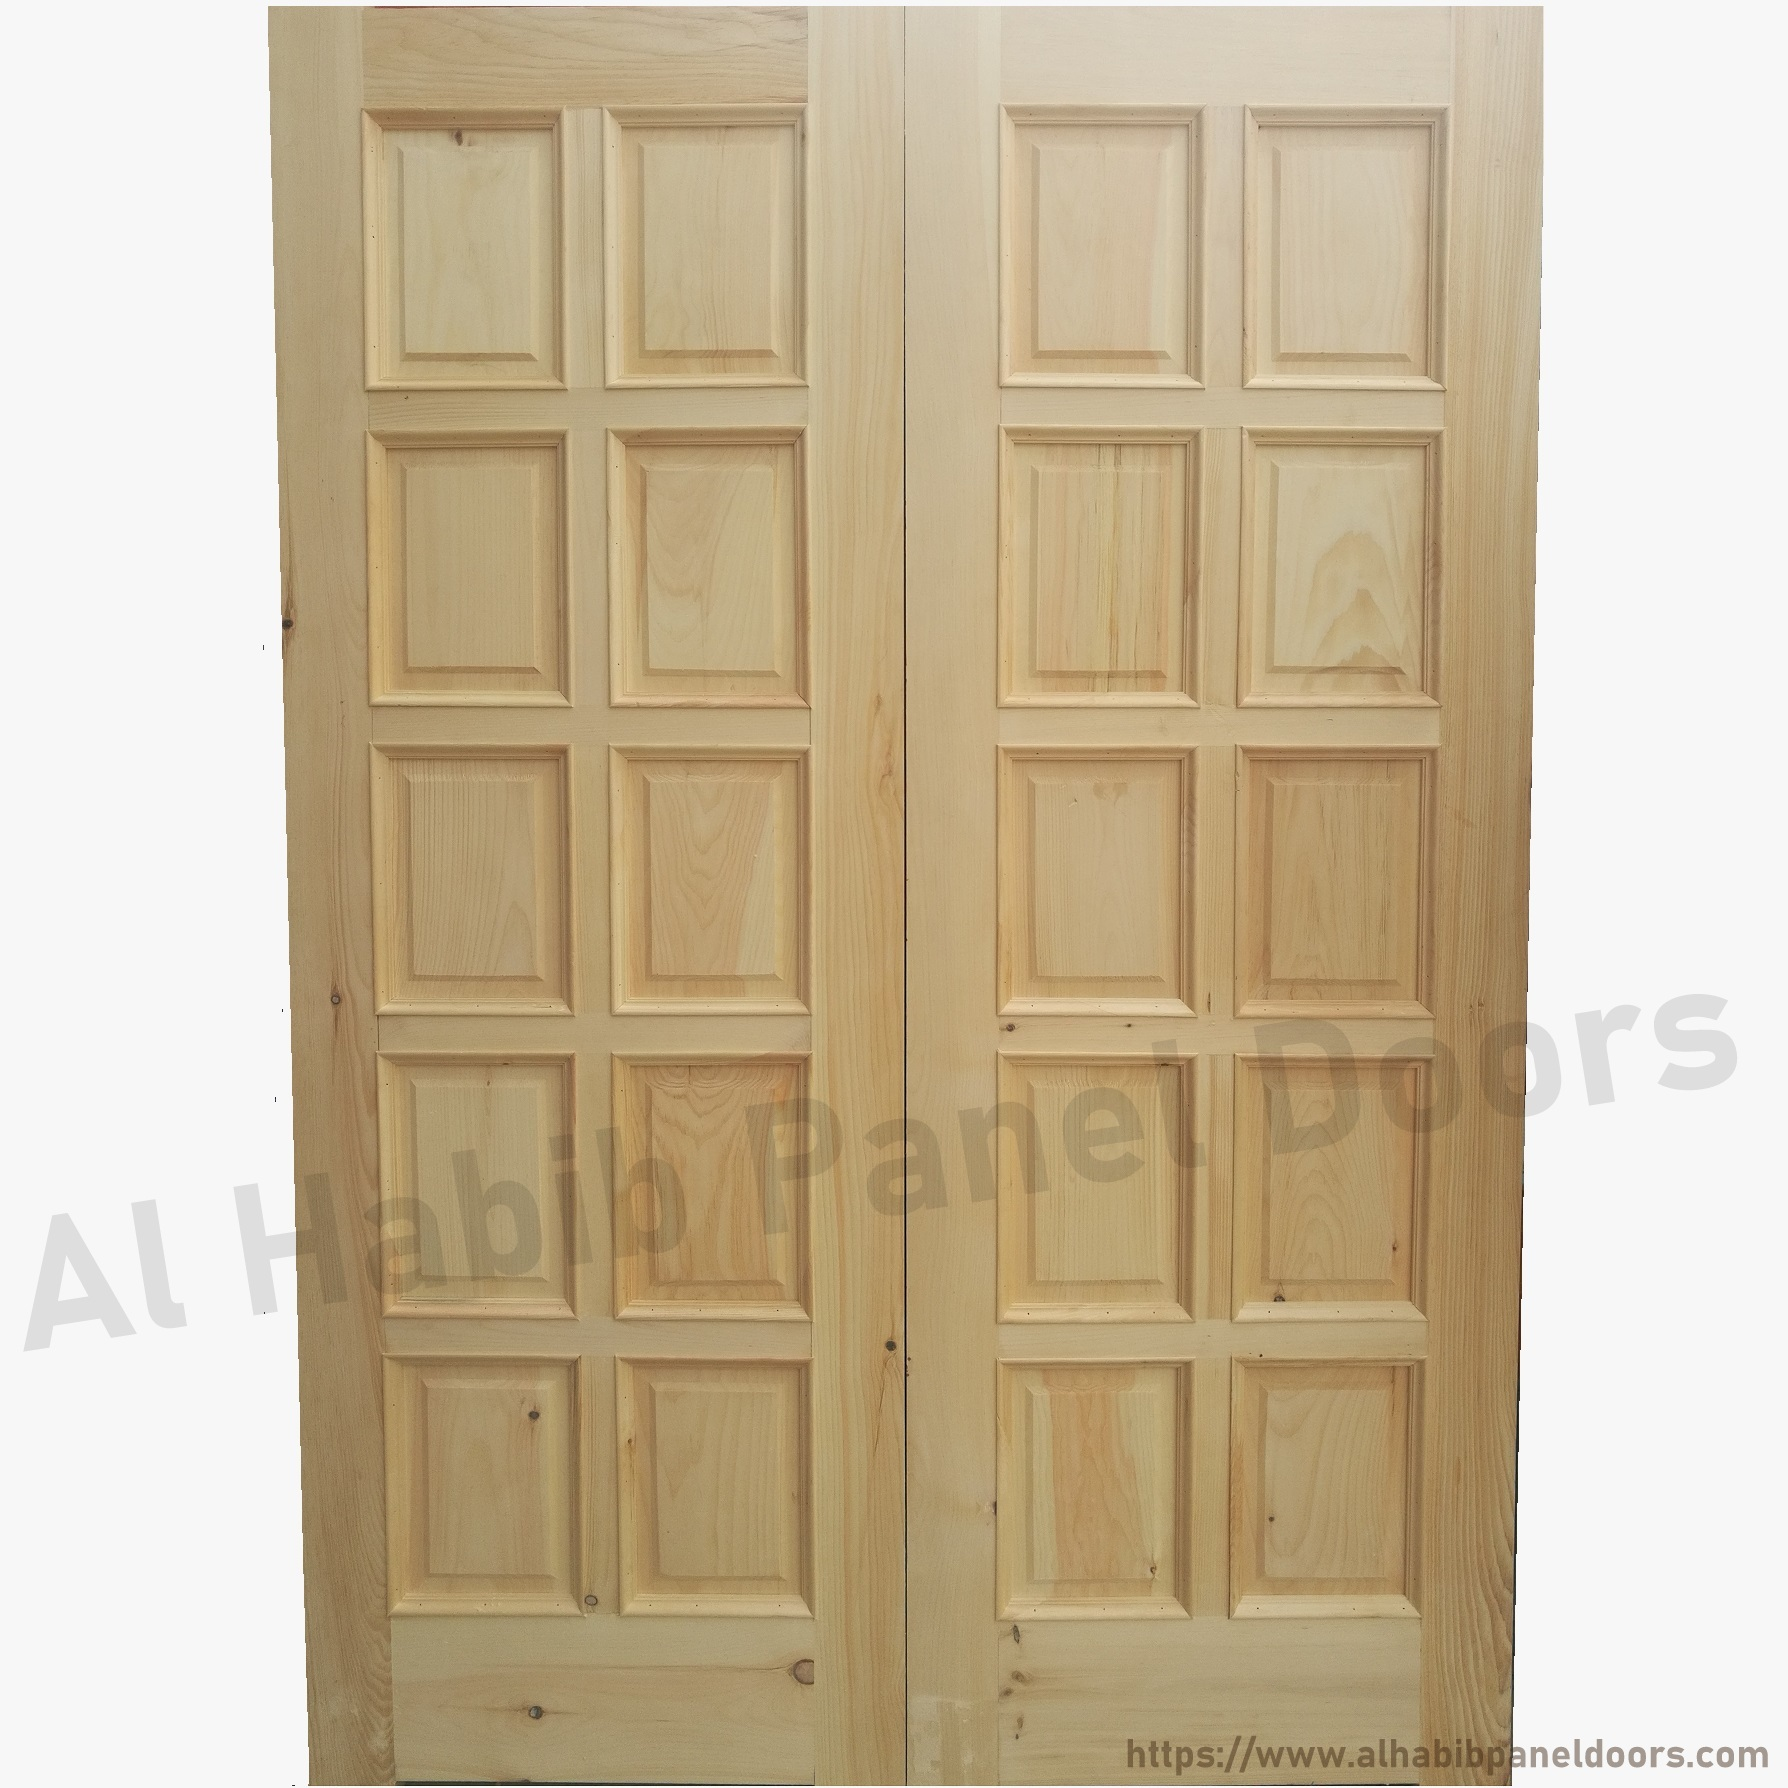 Pakistani kail solid wood double door hpd410 main doors for Entrance double door designs for houses